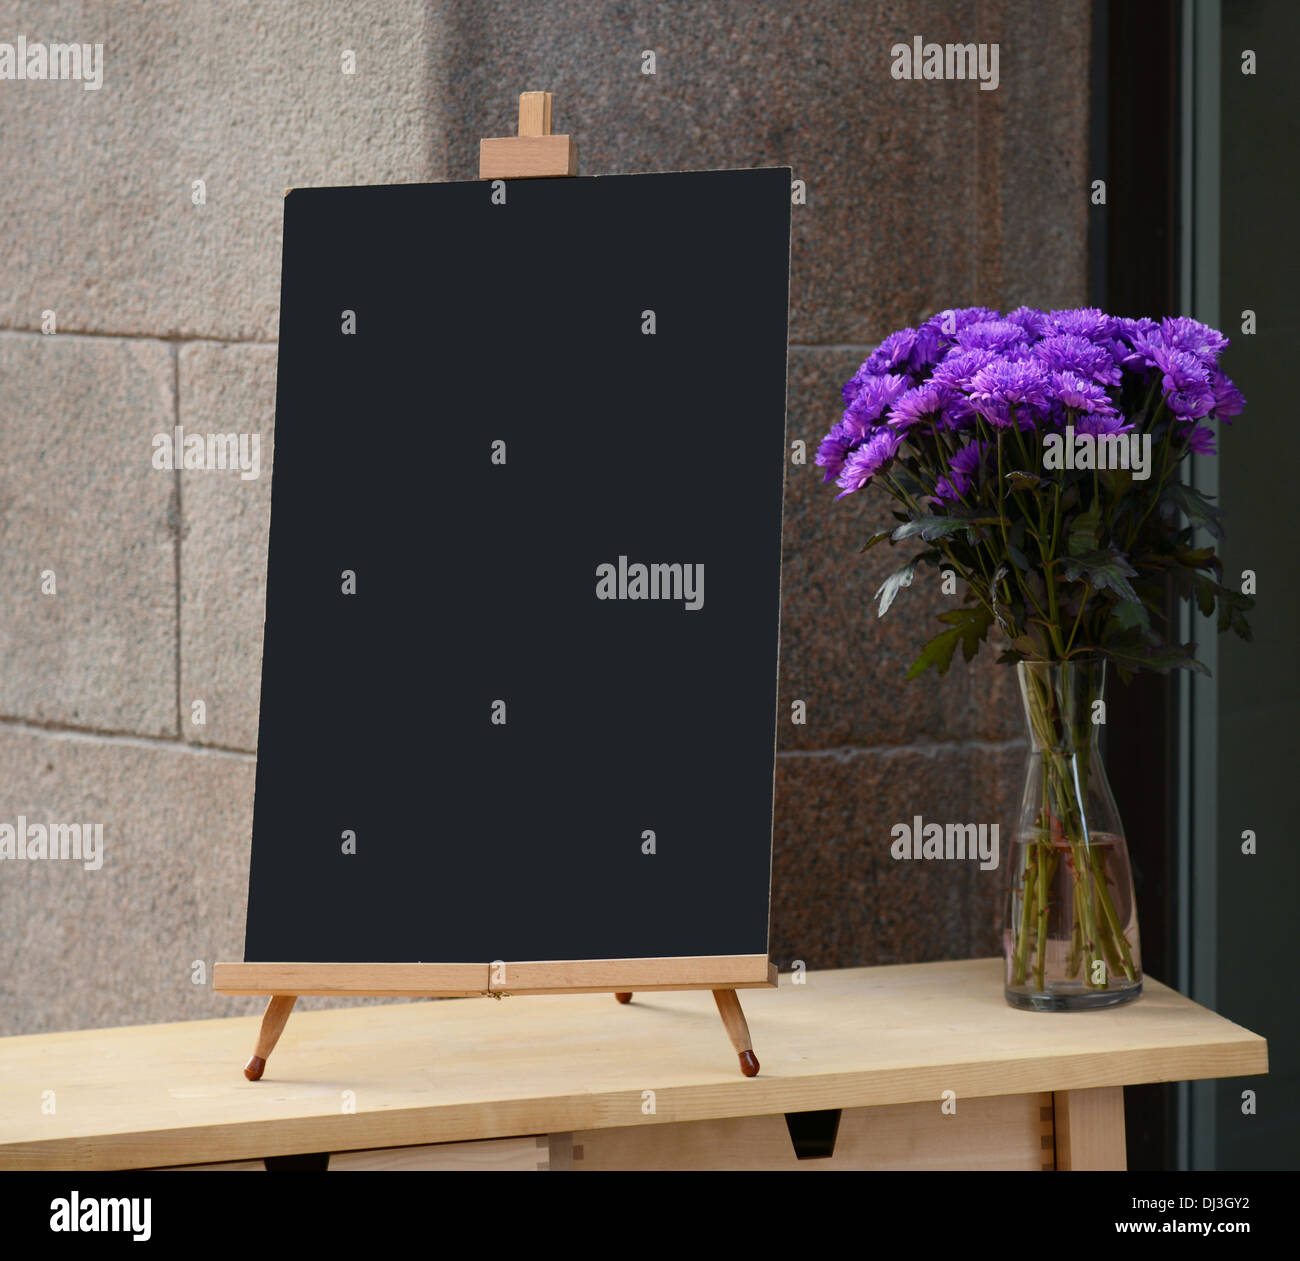 Wooden Board For Restaurant Menu With Empty Space To Add Text Stock - Standing table for restaurant